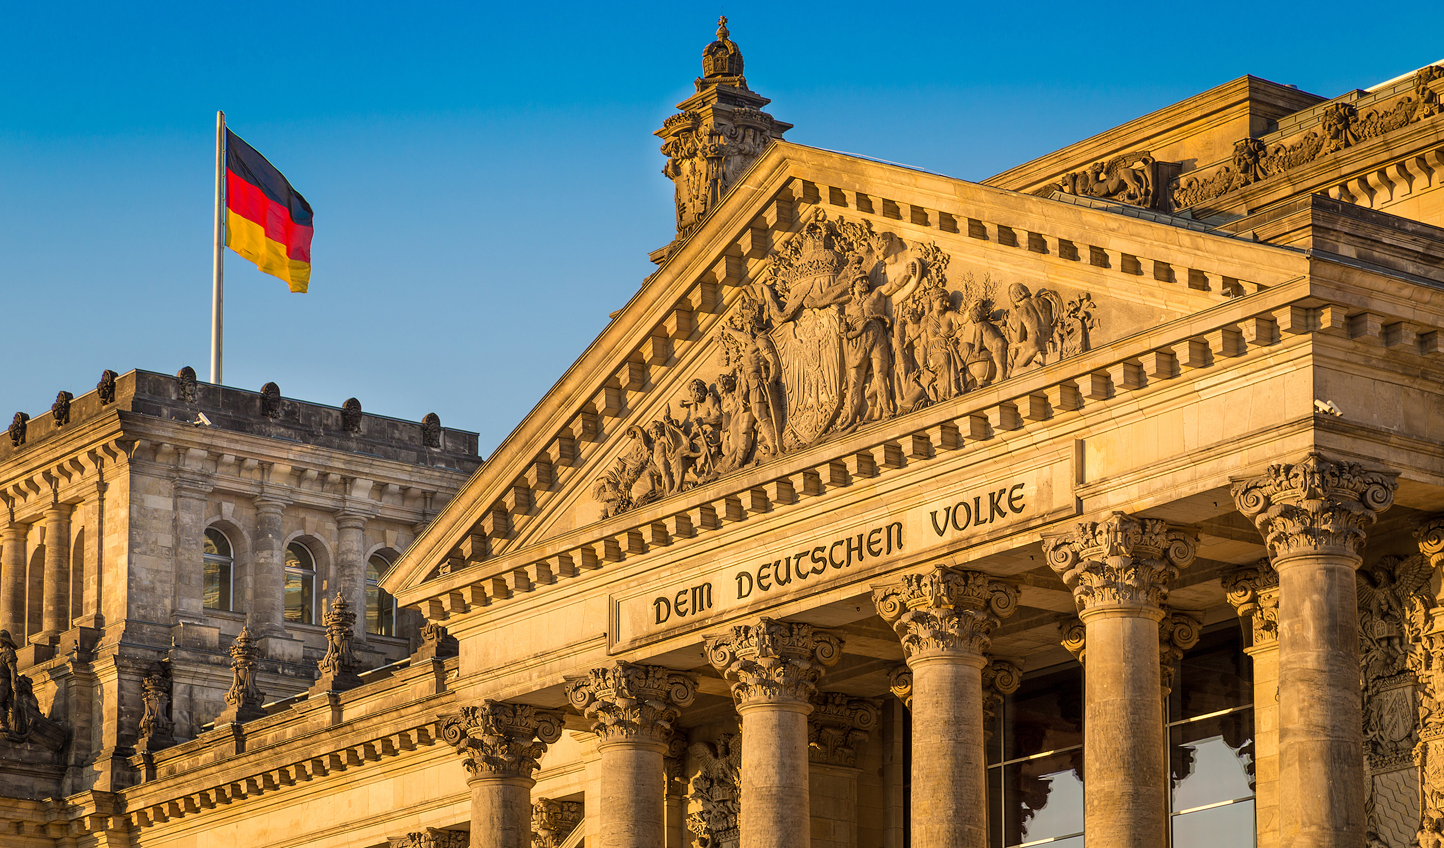 Get a sense of Germany's past and present at the Reichstag